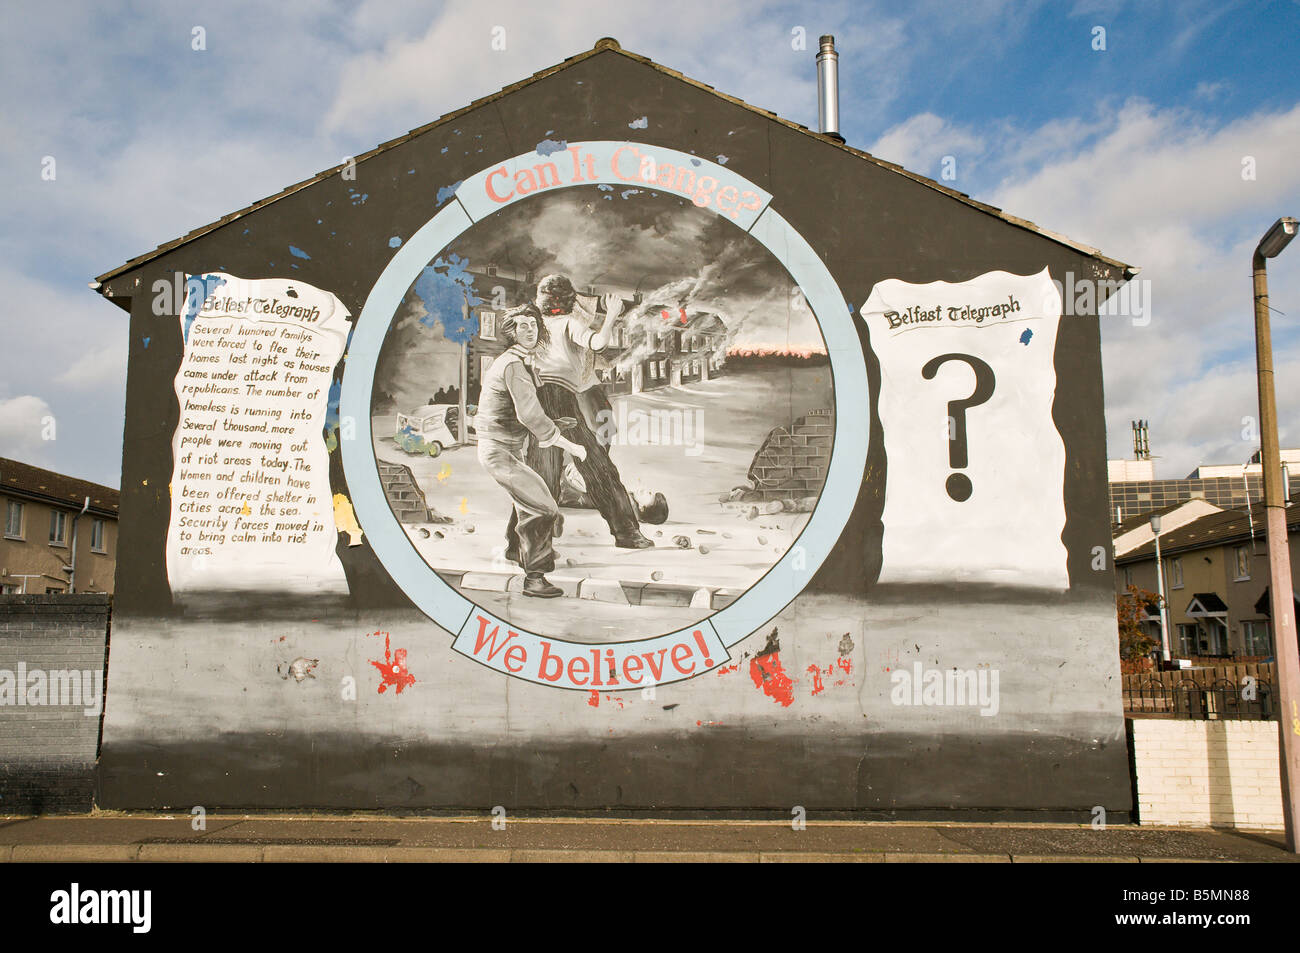 Loyalist/Unionist mural, 'Can it change? We believe!' - Stock Image